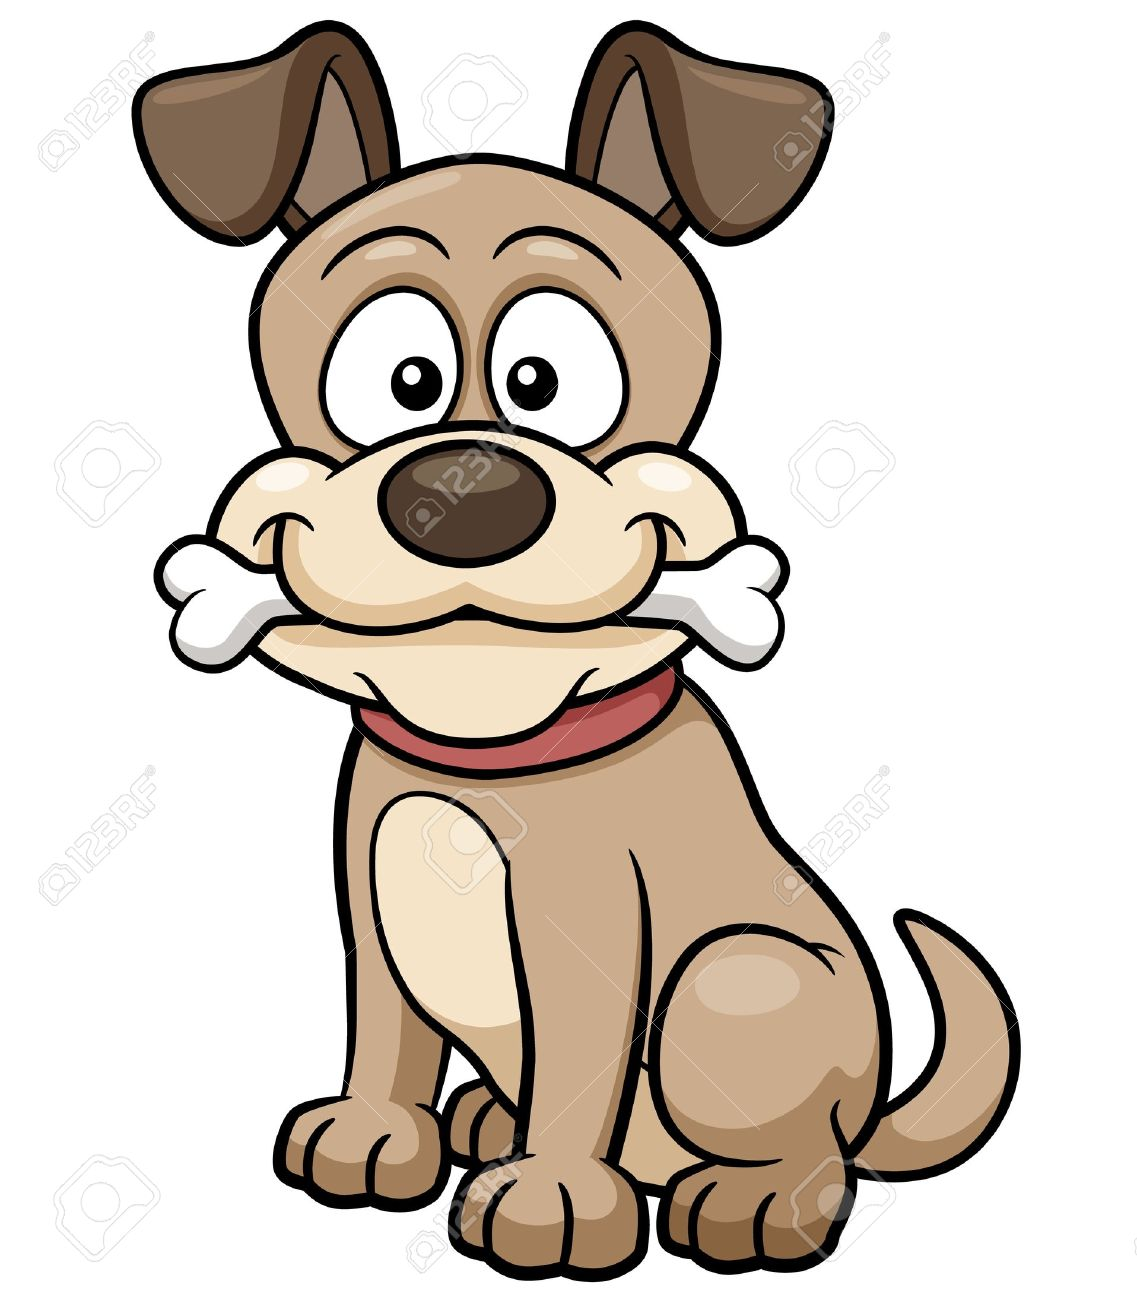 1137x1300 Collection Of Puppy Clipart Vector High Quality, Free